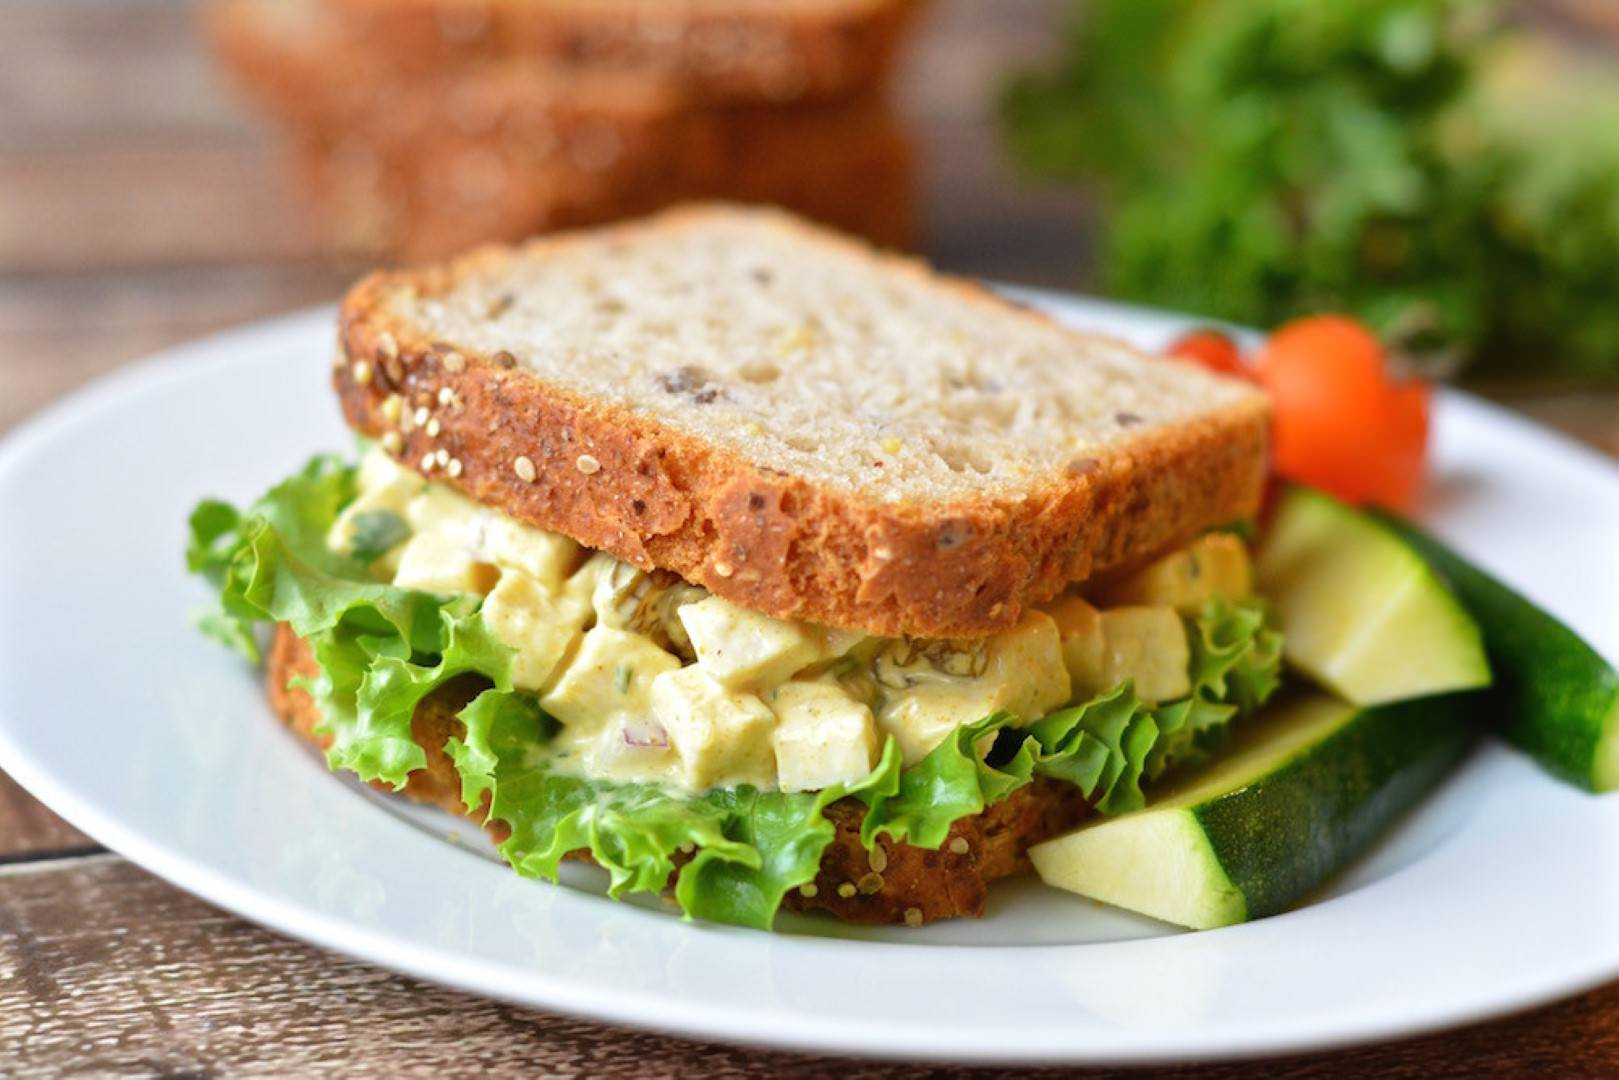 curried chicken salad on gluten-free bread